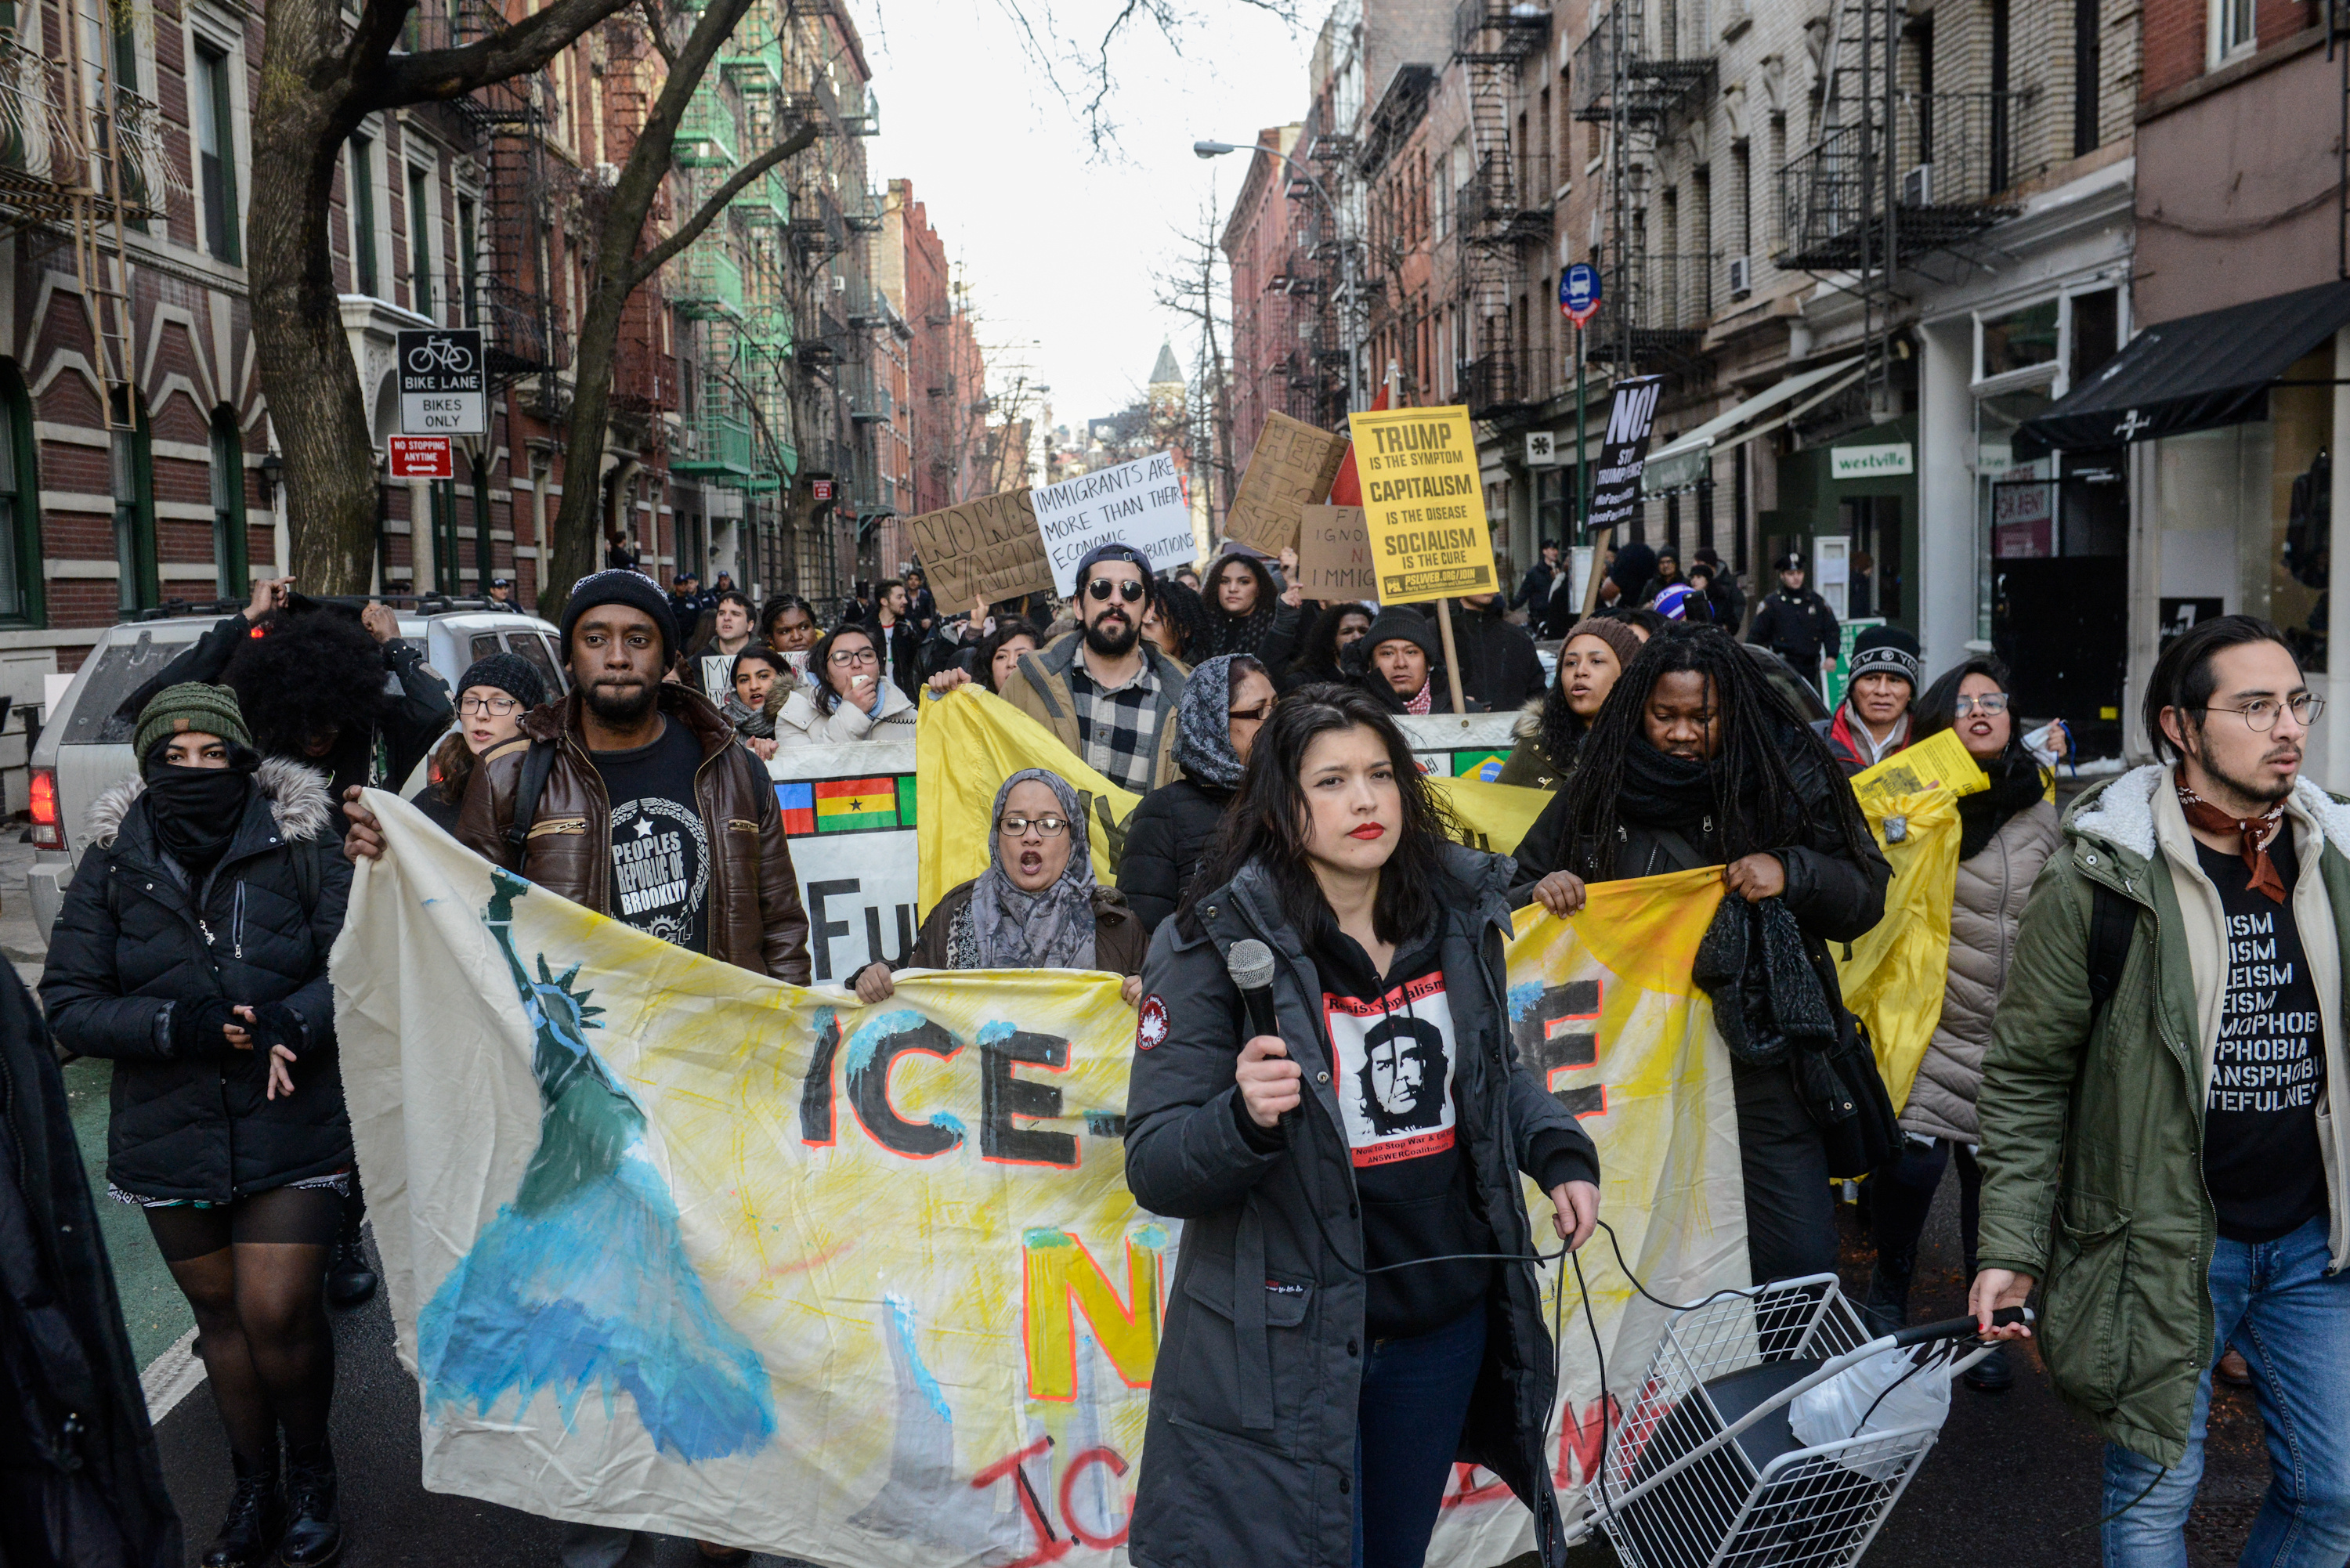 People participate in a protest against U.S. President Donald Trump's immigration policy and the recent Immigration and Customs Enforcement (ICE) raids in New York City, U.S. February 11, 2017.